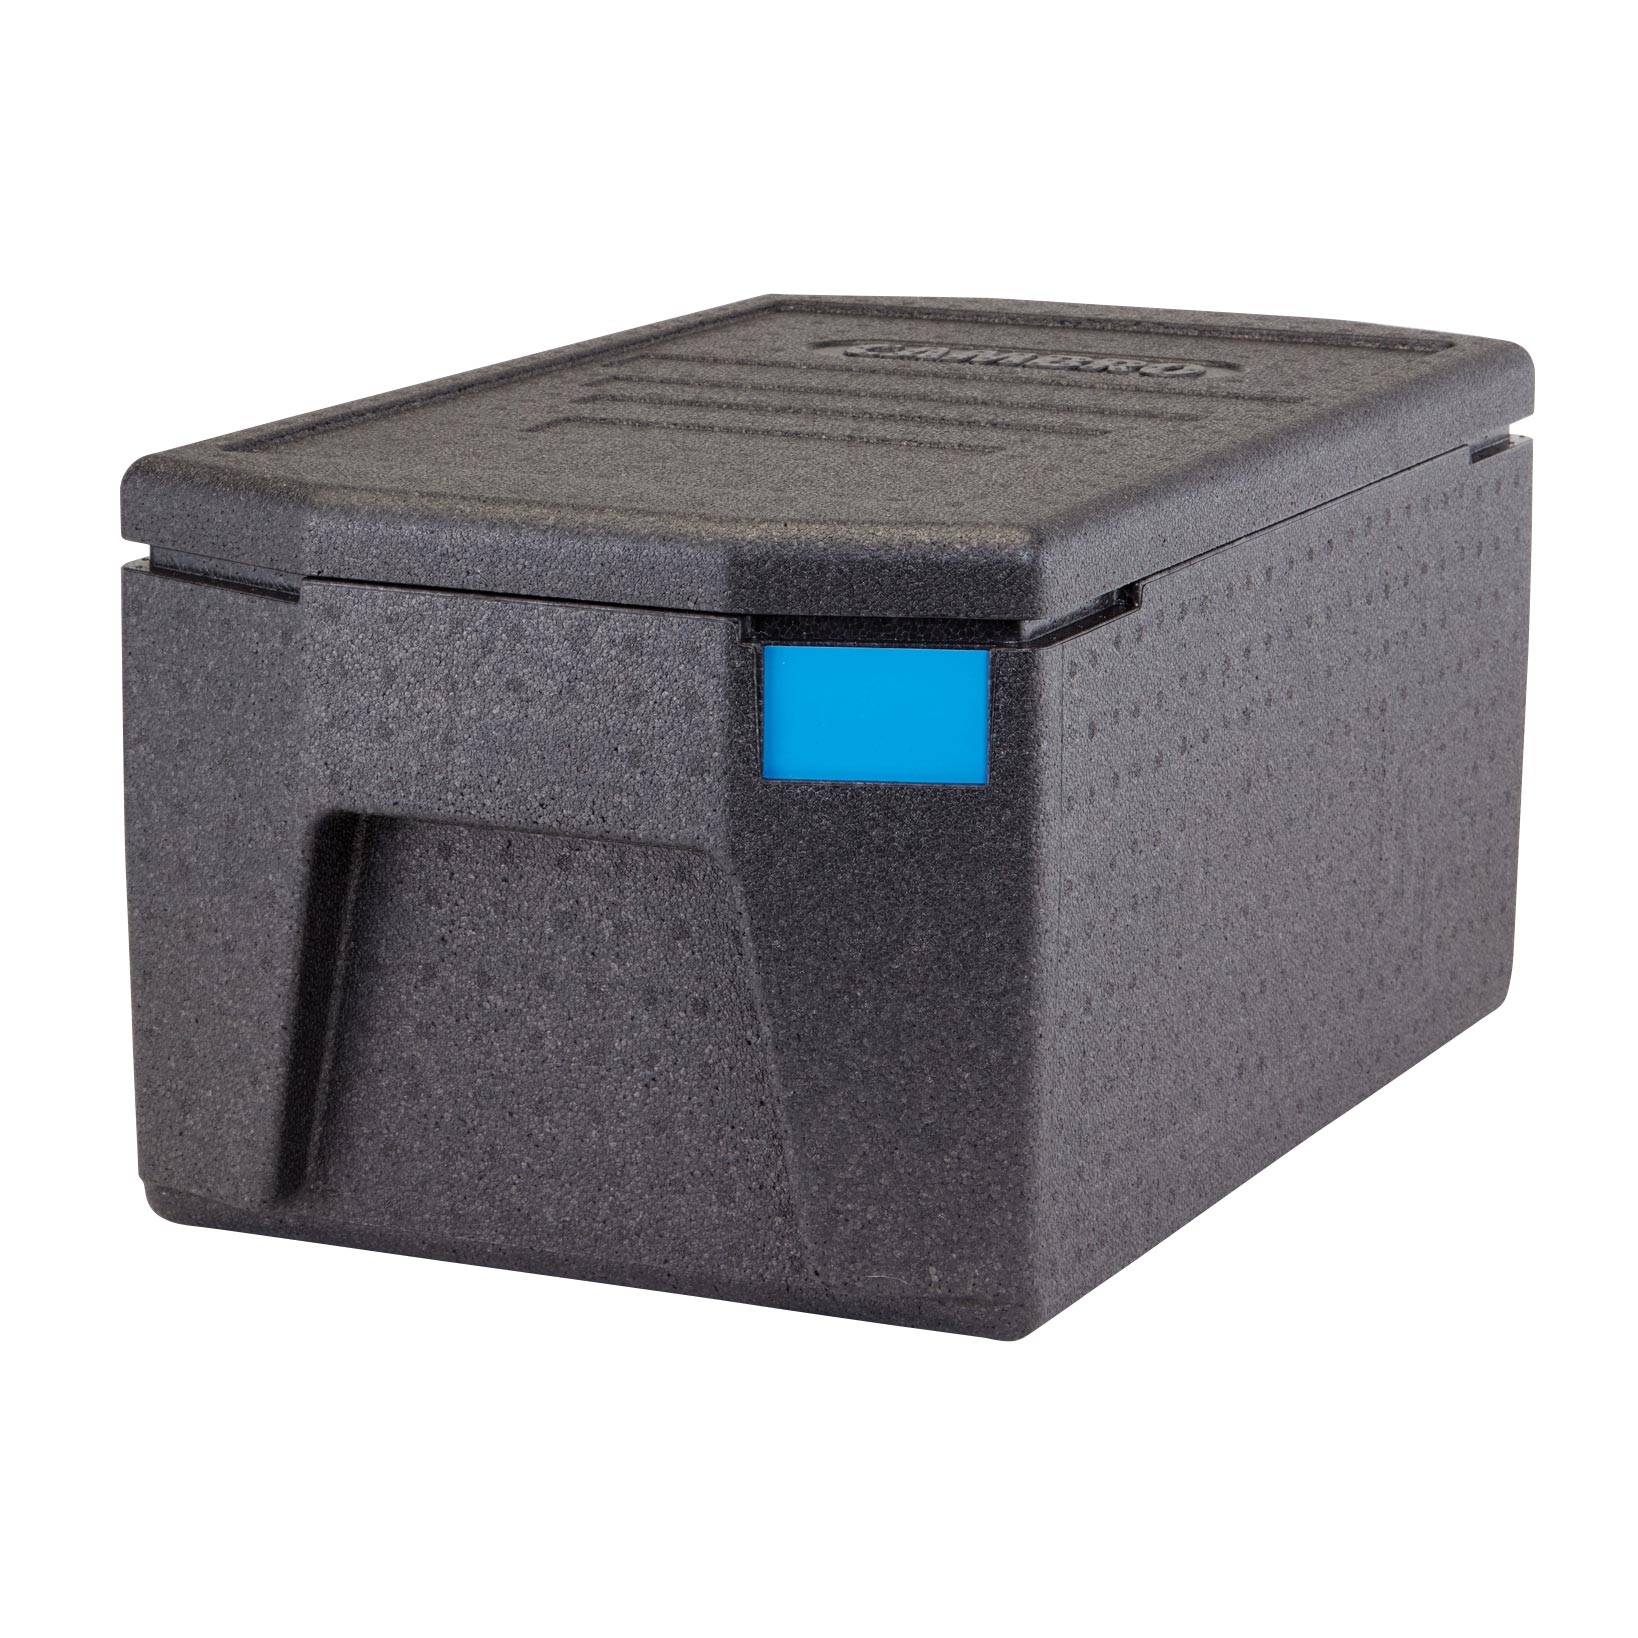 Cambro EPP180LHSW110 food carrier, insulated plastic